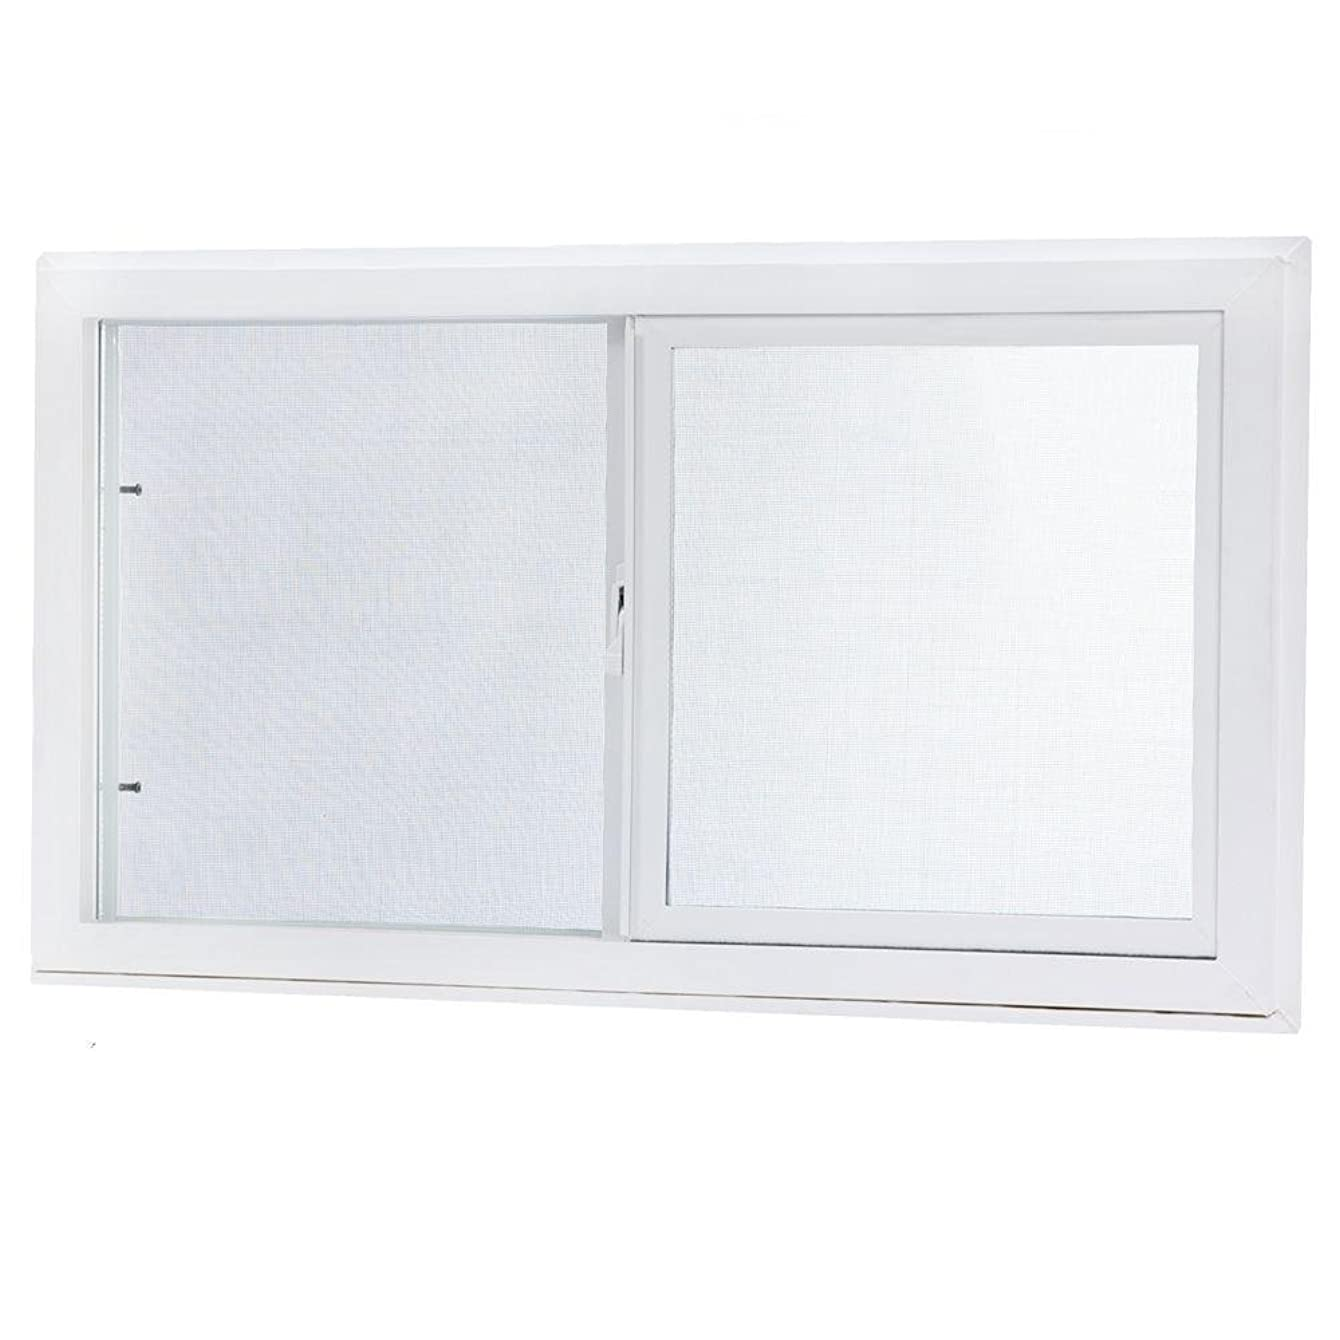 TAFCO WINDOWS Vinyl Slider Window, 32 in. x 18 in. White with Dual Pane Insulated Glass